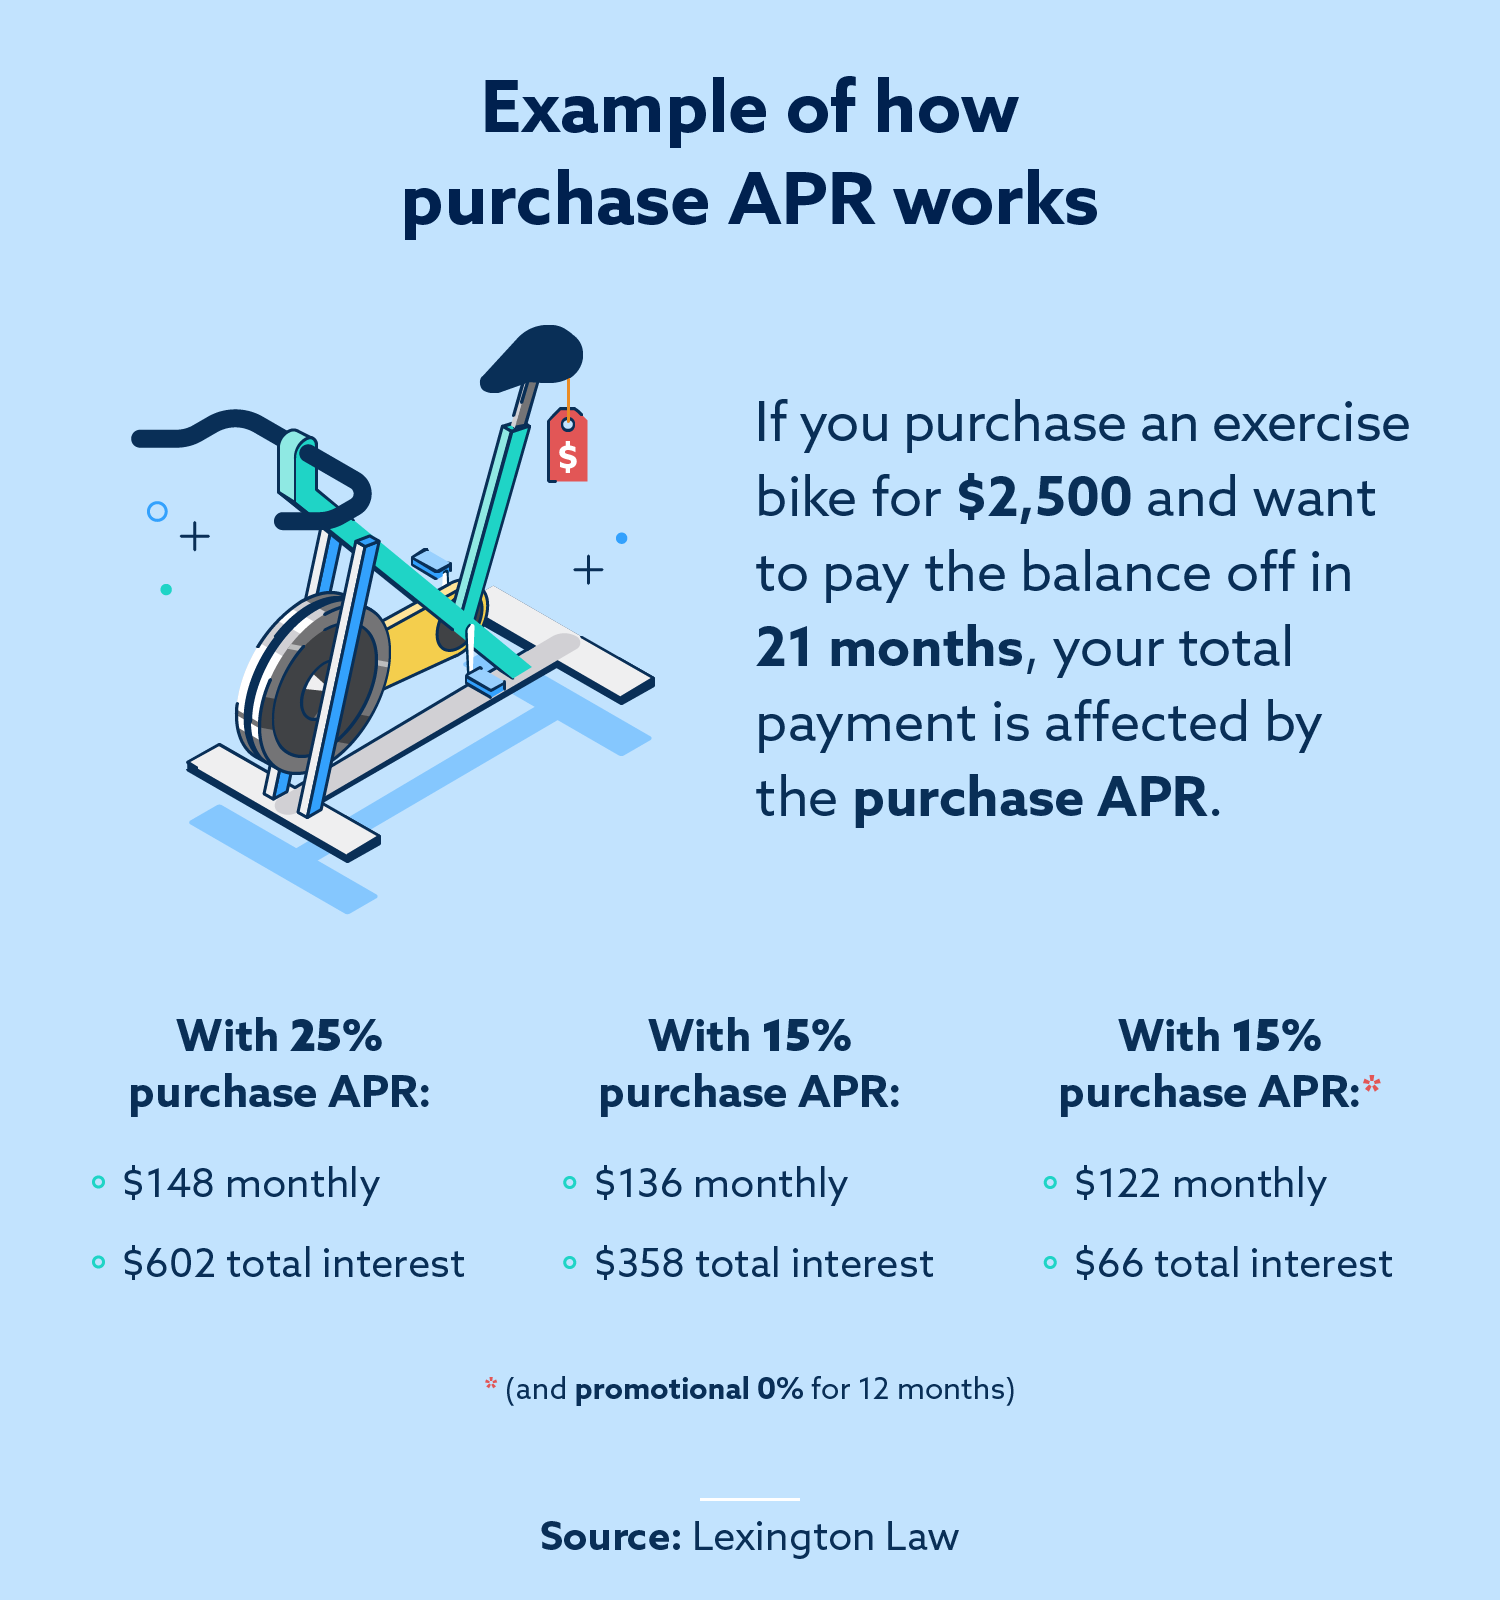 Example of how purchase APR works.